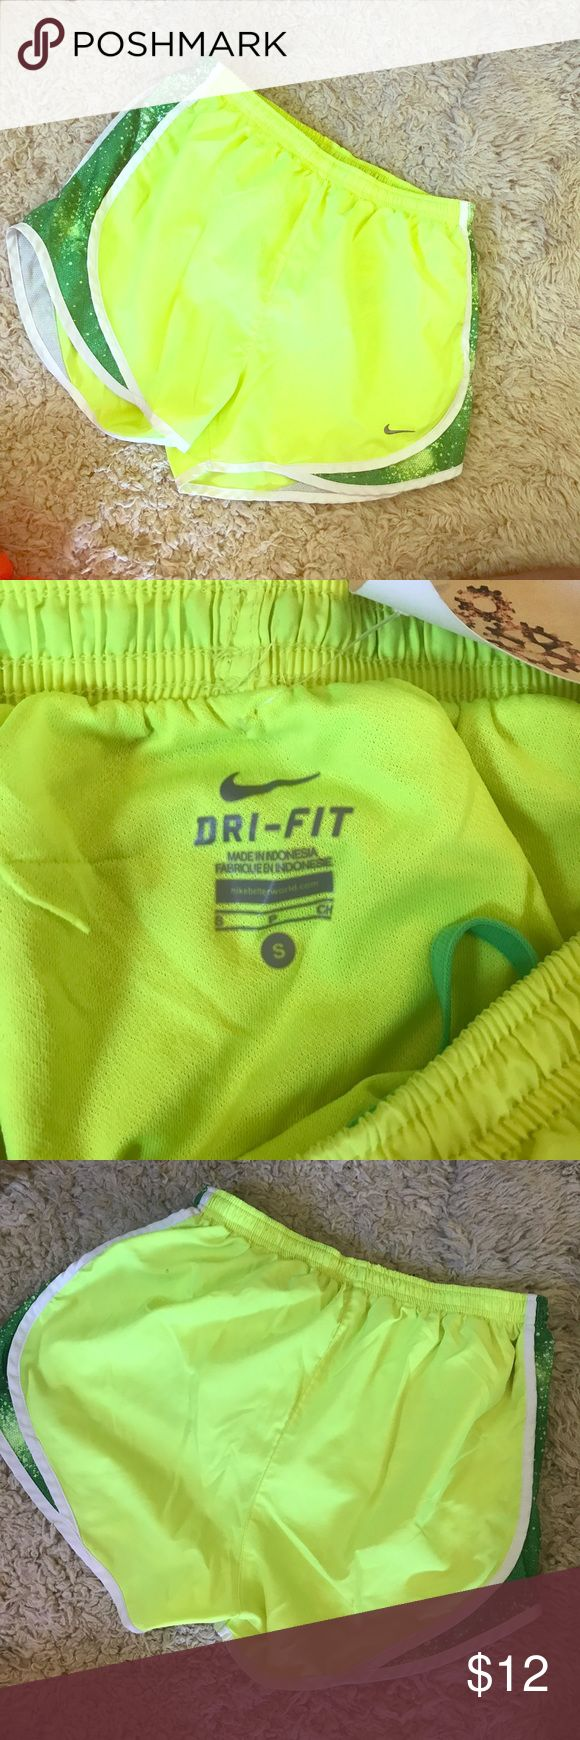 ⚡️ Electric ⚡️ Green Nike Dri Fit Shorts A beautiful lemon-lime color that anyone will see from a mile away! The neon helps you look tanner, while I work on maintaining your summer bod! Small stain size of a pen tip on backside (see in last photo). Great deal for great workout gear! Nike Shorts